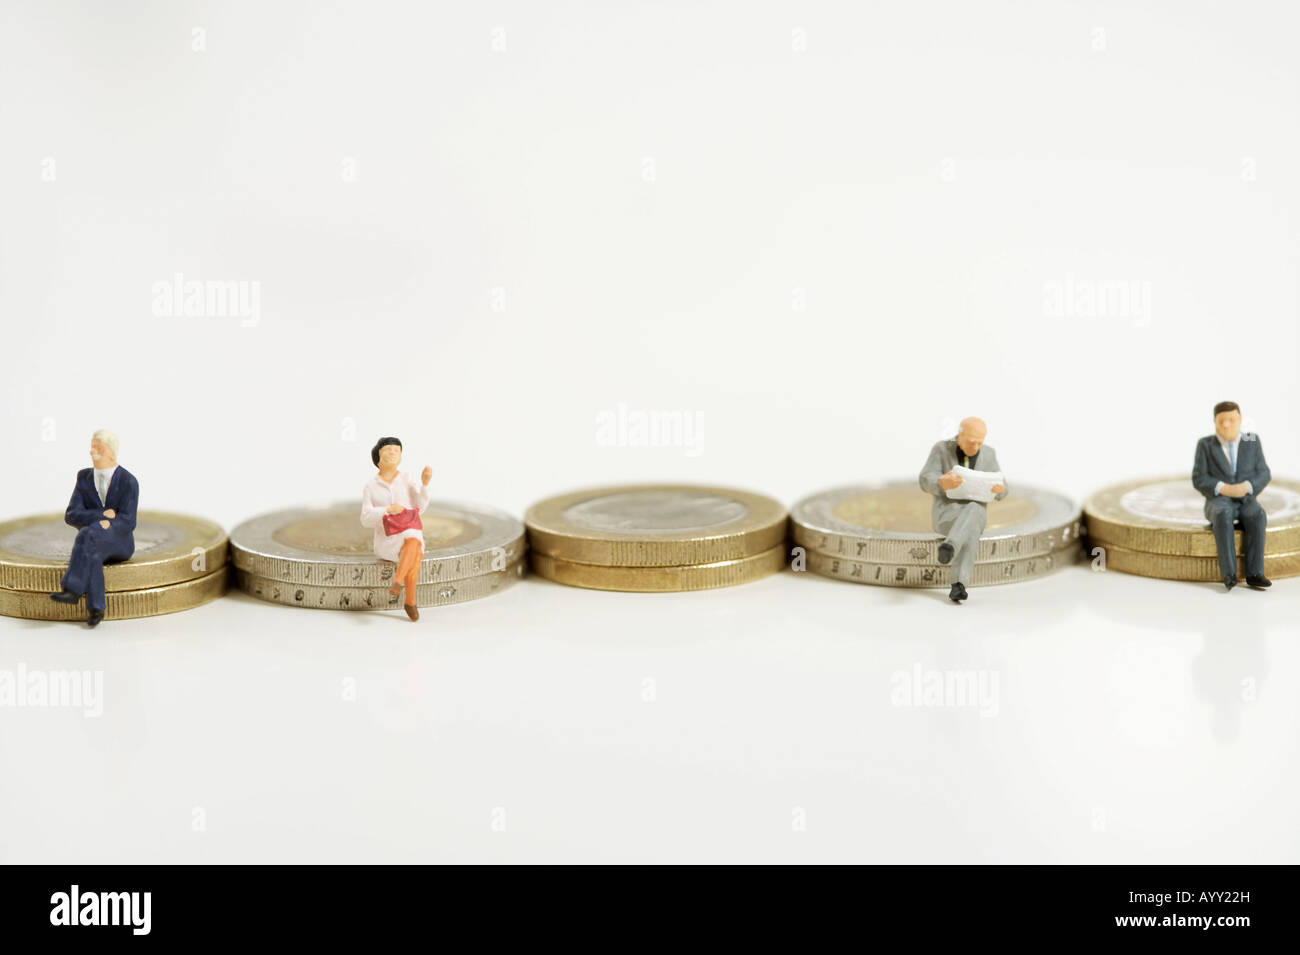 Businesspeople figurines sitting on coins - Stock Image